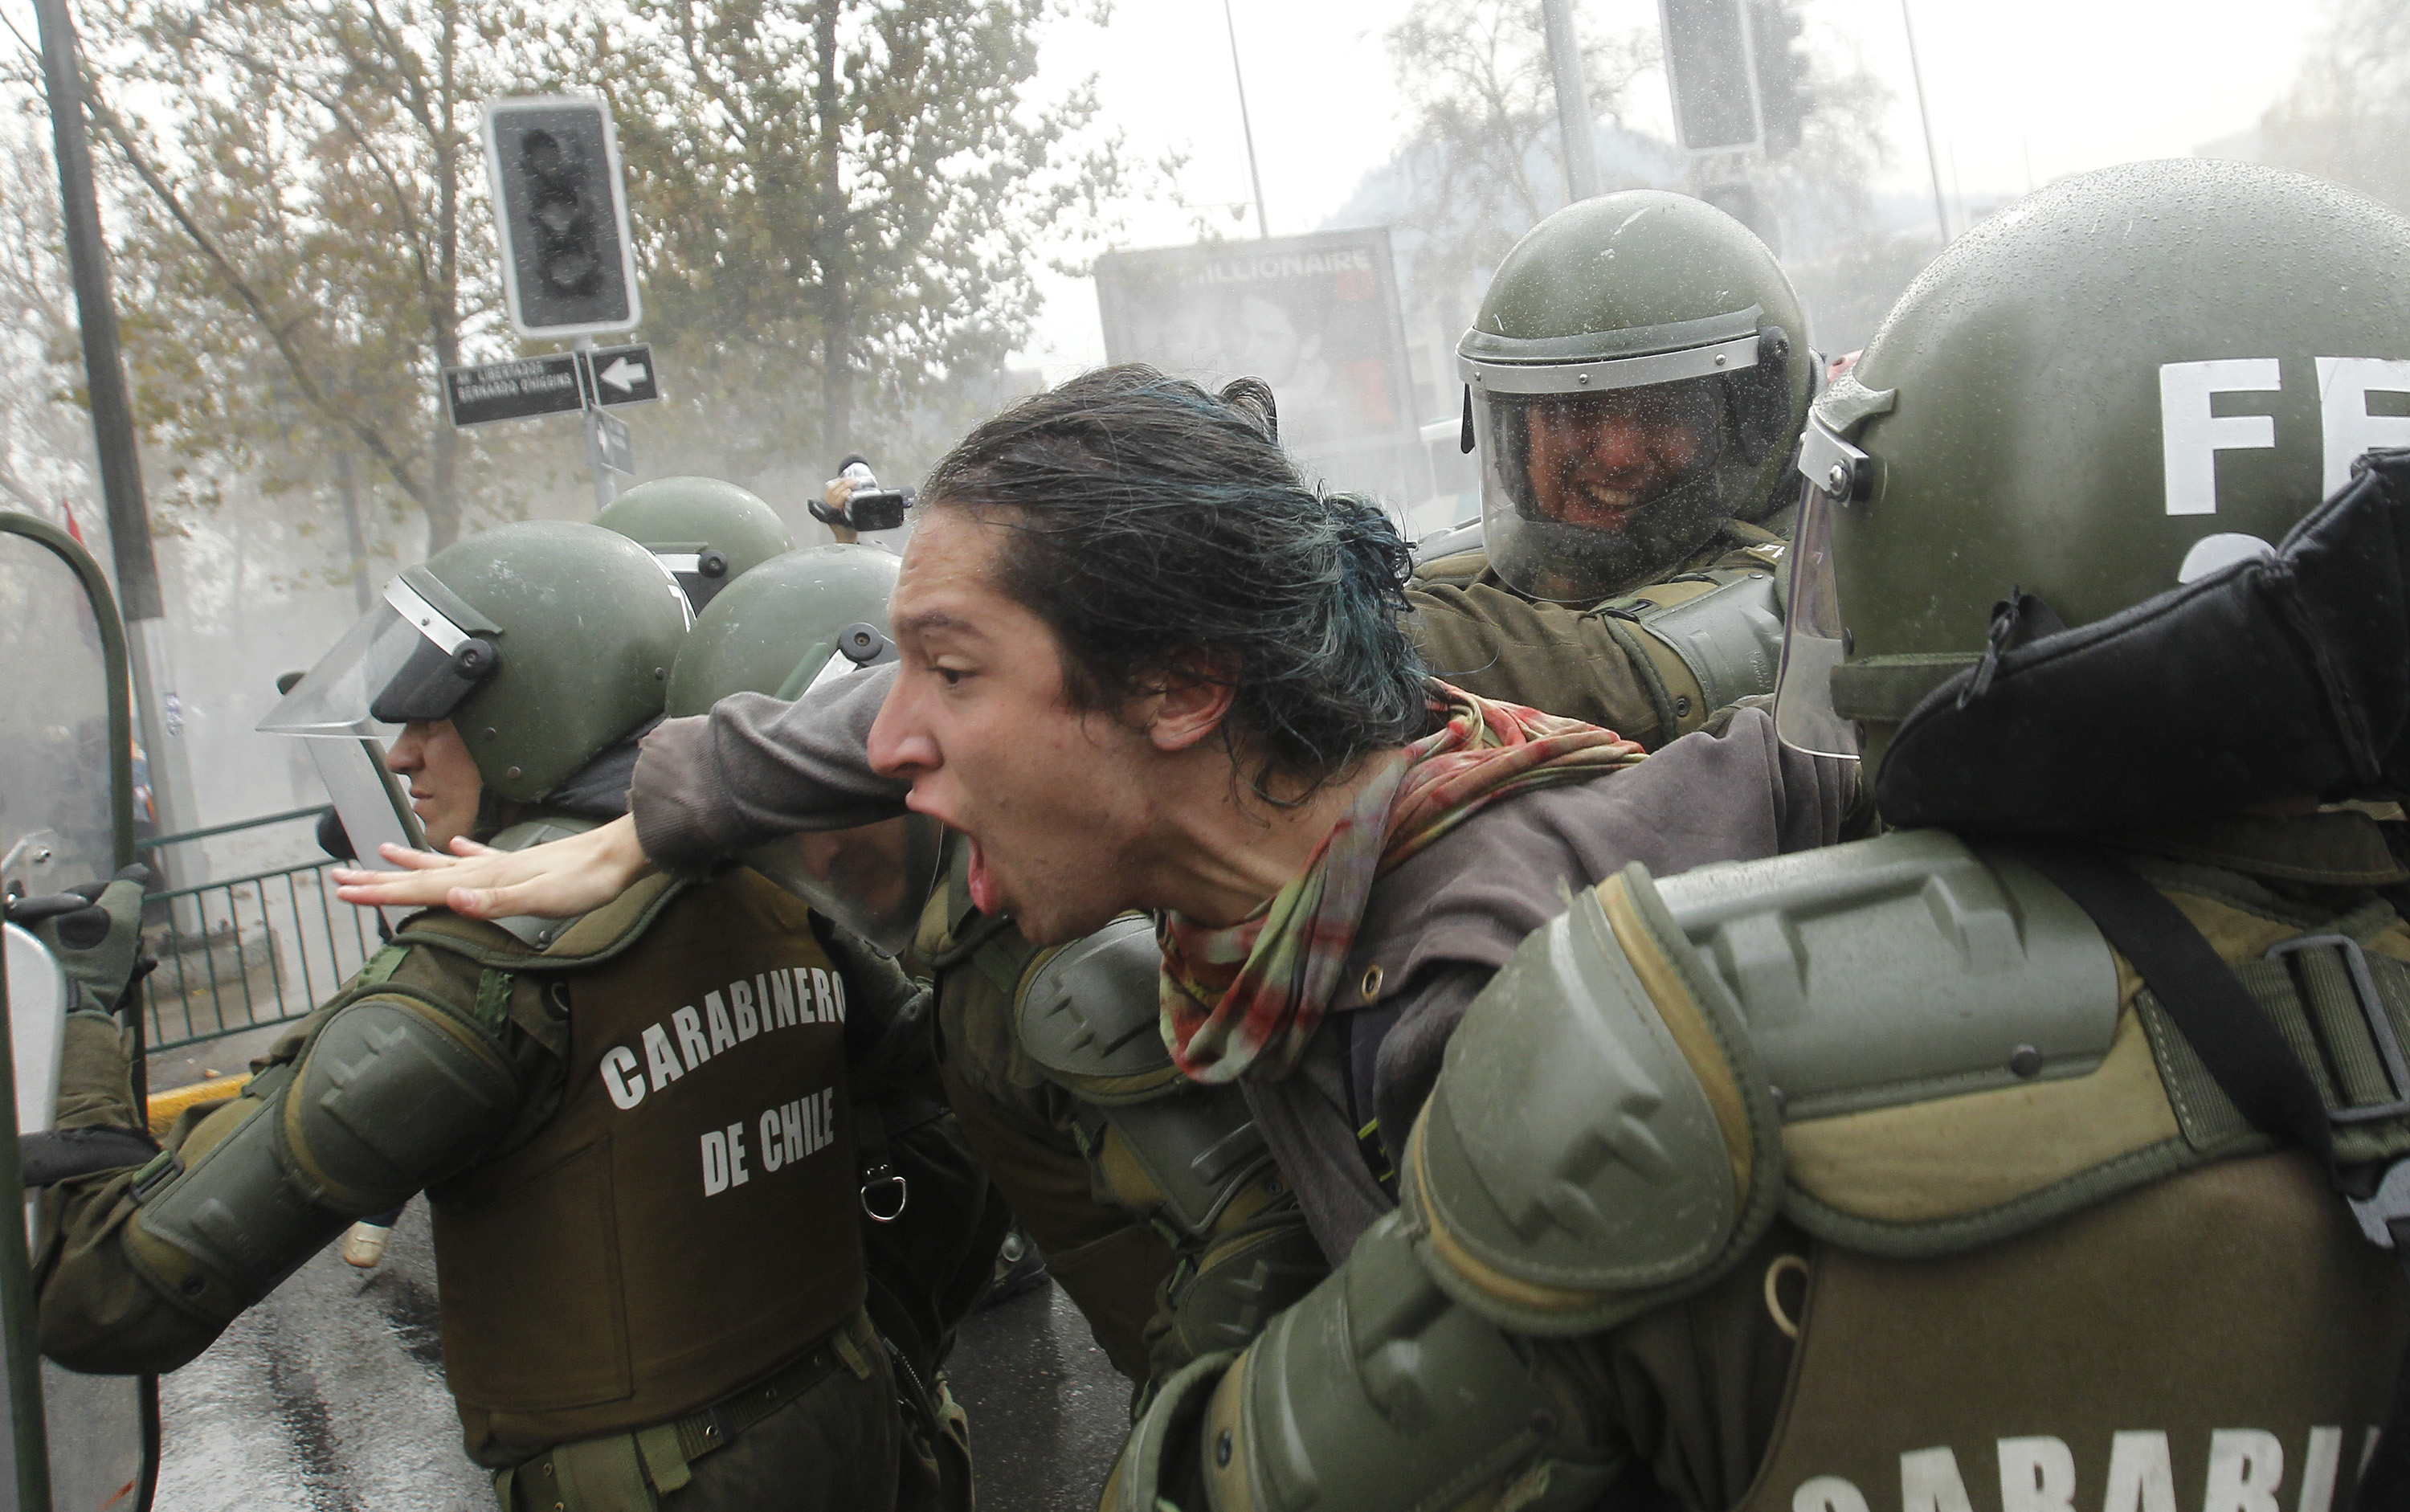 Riot police arrest a student during a march held to protest the slow pace of educational reform, in Santiago, on May 26, 2016